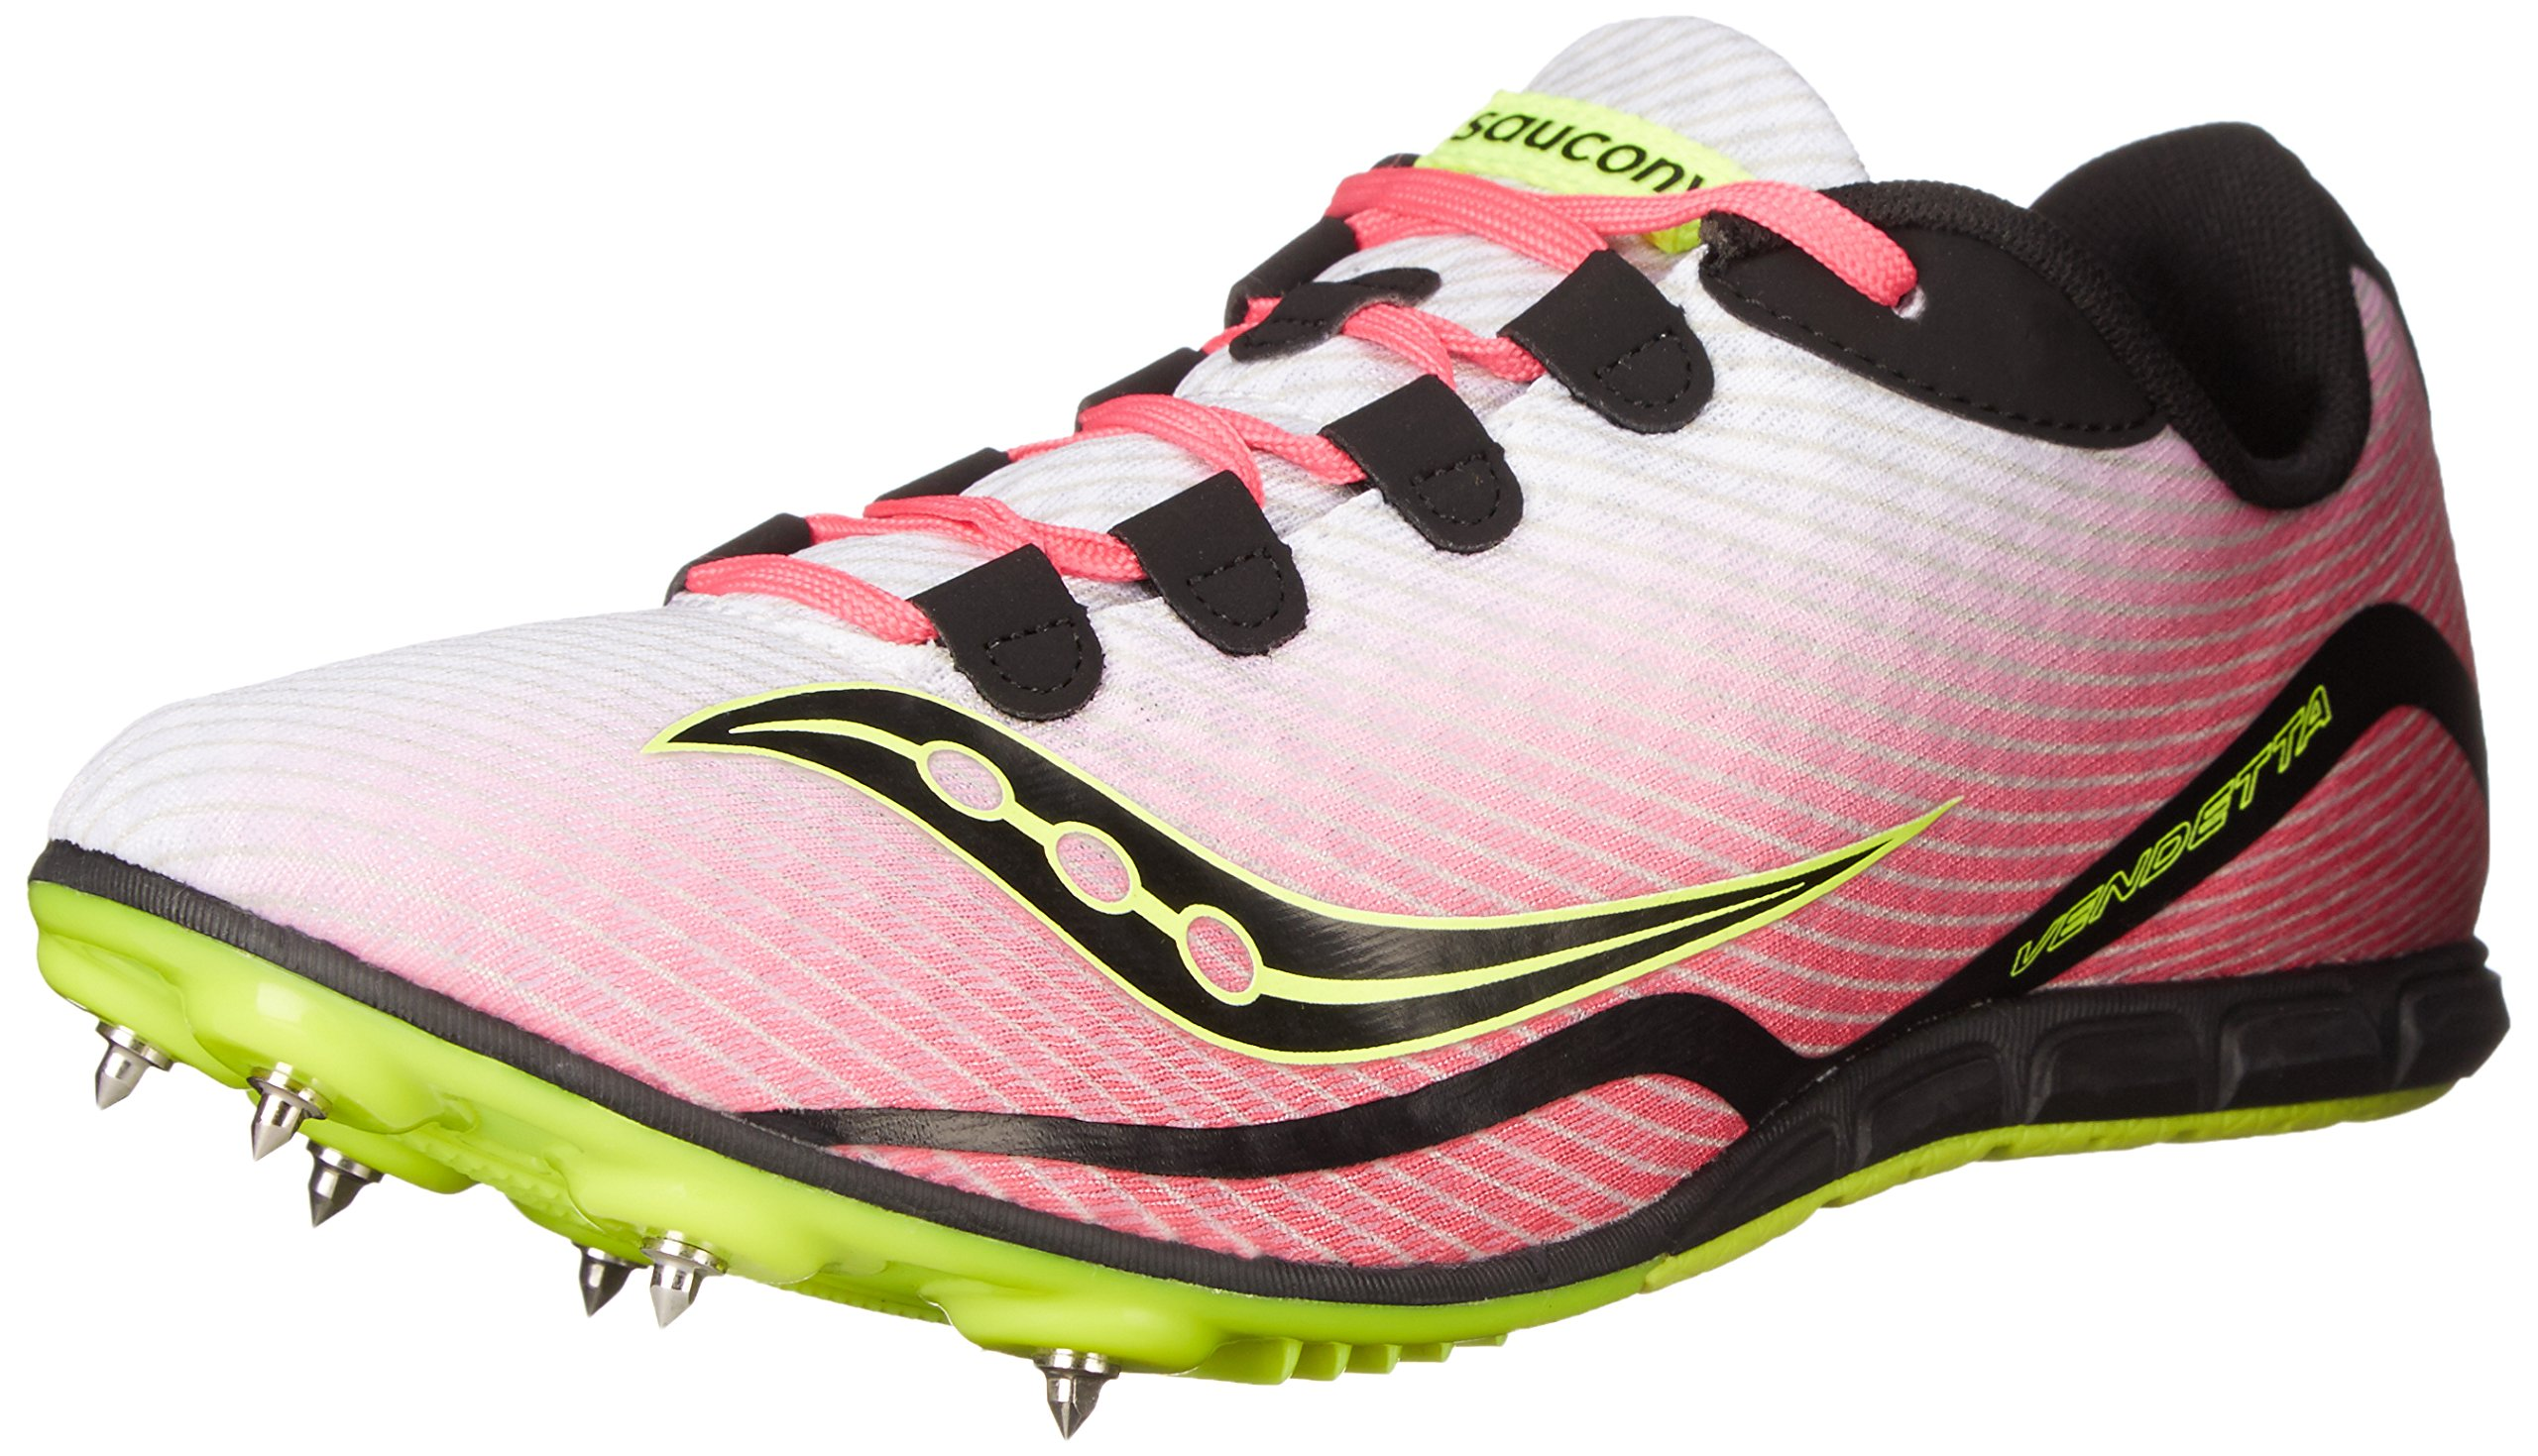 Saucony Women's Vendetta Spike Shoe, White/Pink, 6.5 M US by Saucony